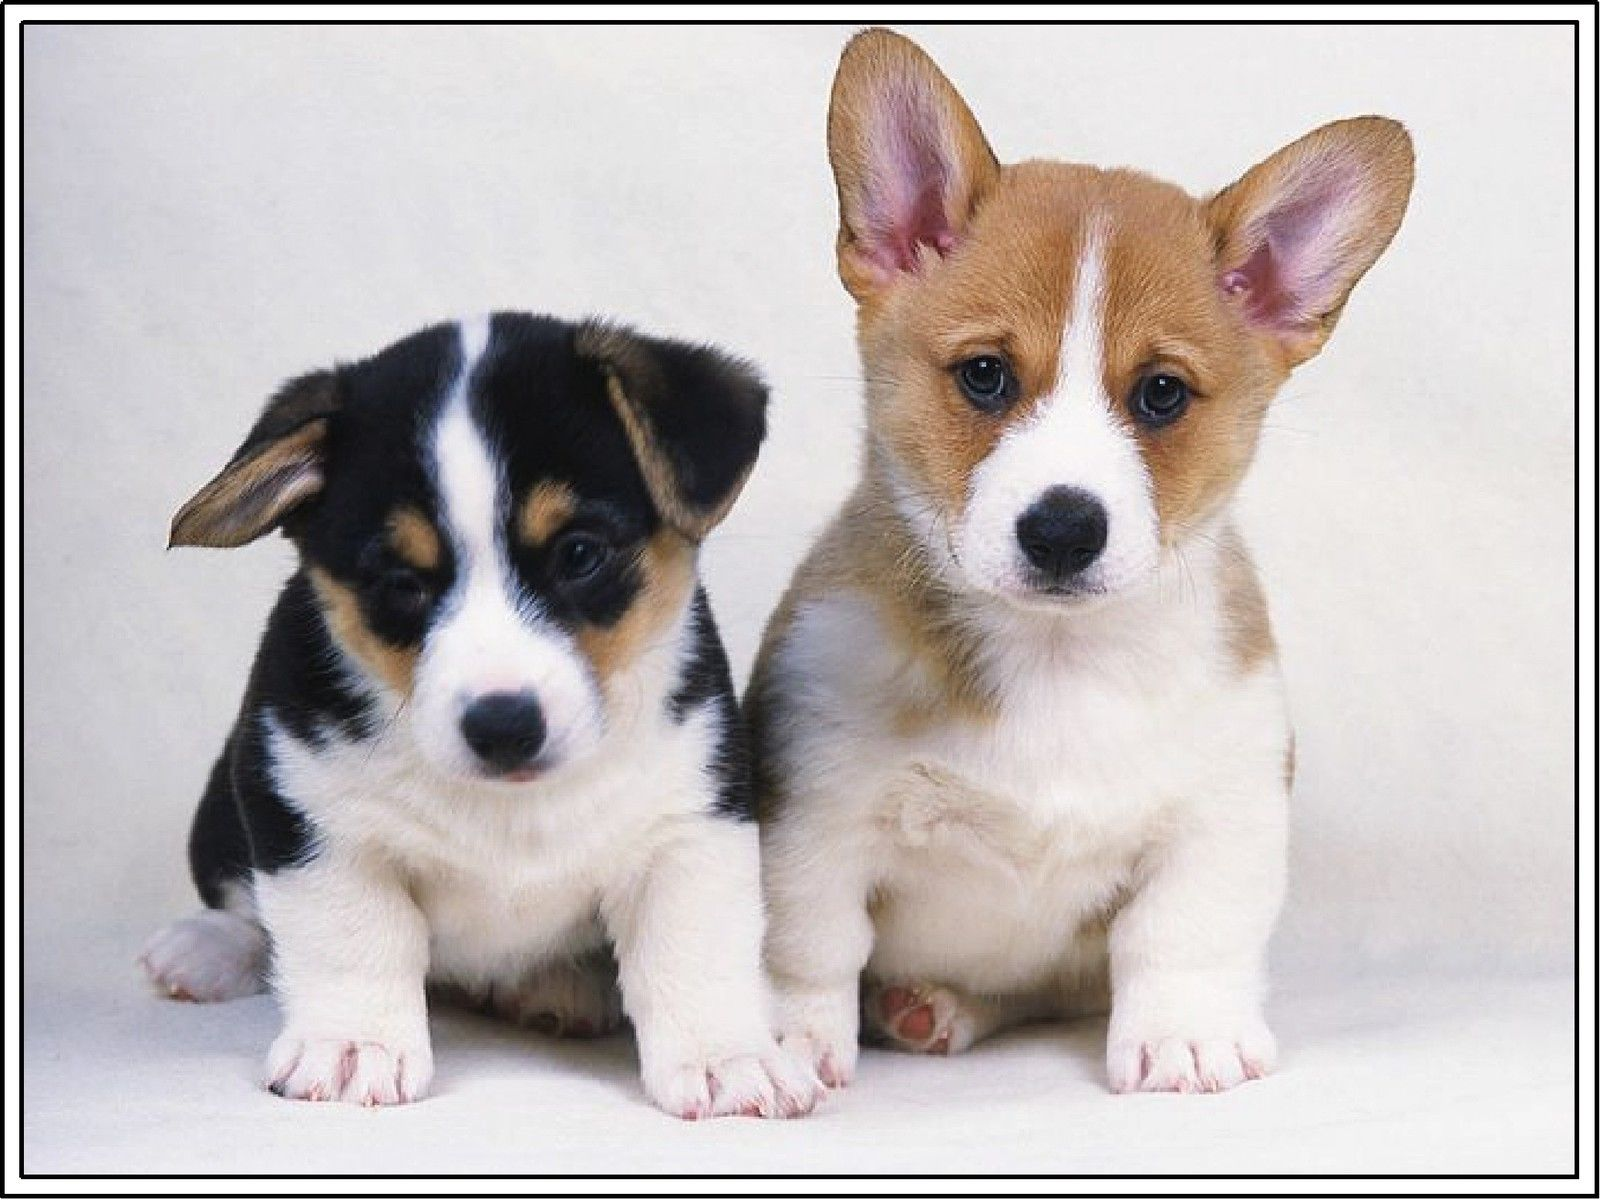 6 39 4set Dog Pembroke Welsh Corgi Puppy Dogs Puppies Greeting